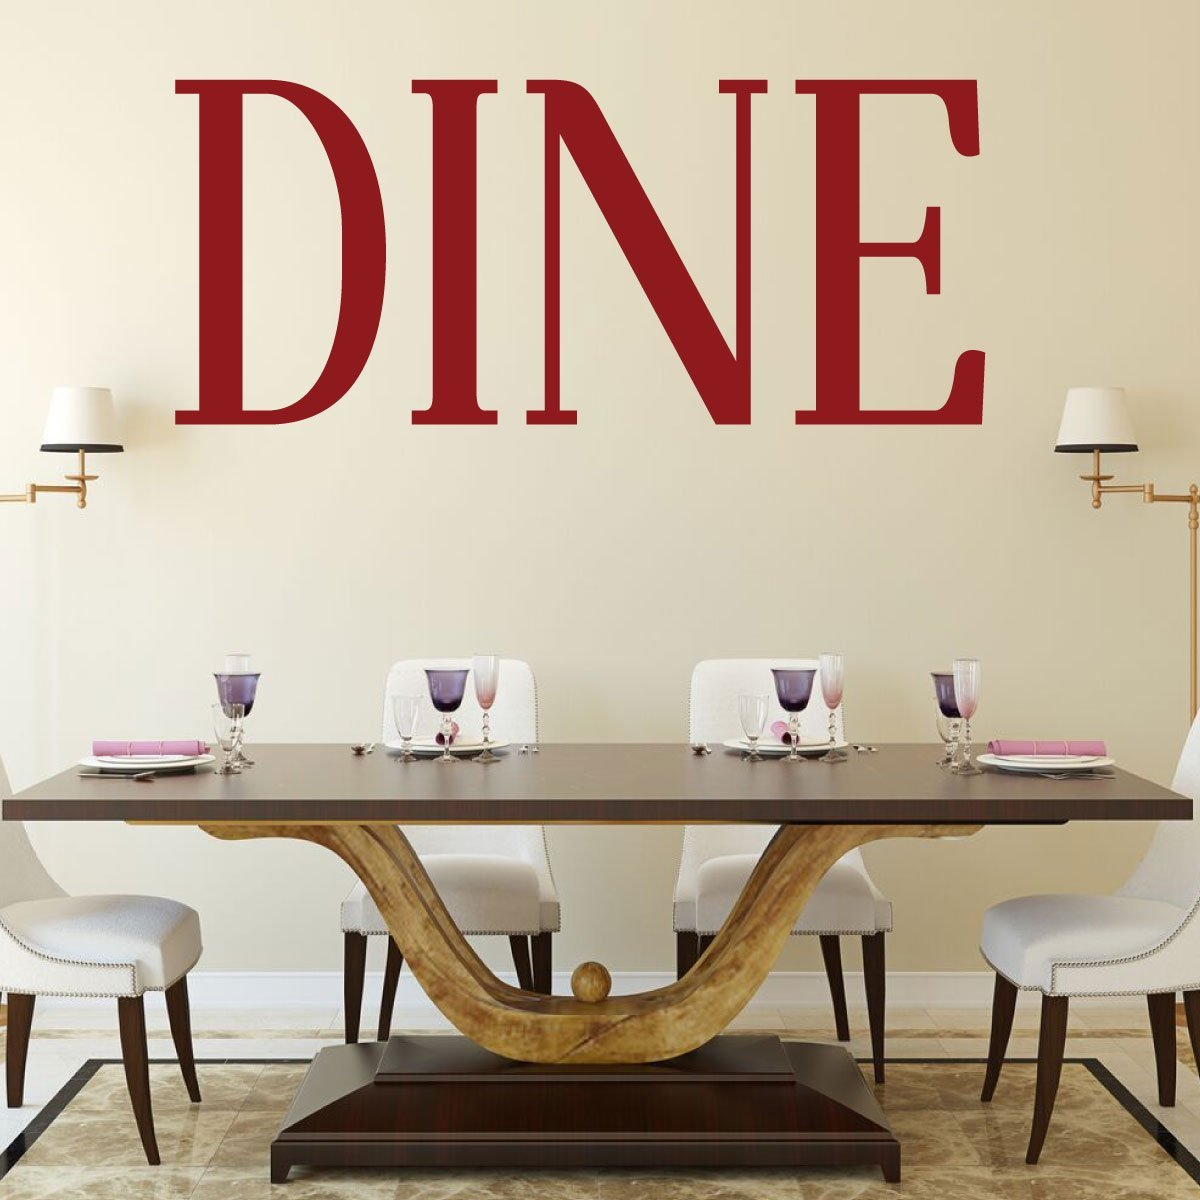 . Restaurant Wall Decor Vinyl Design Vinyl Decor Wall Decal